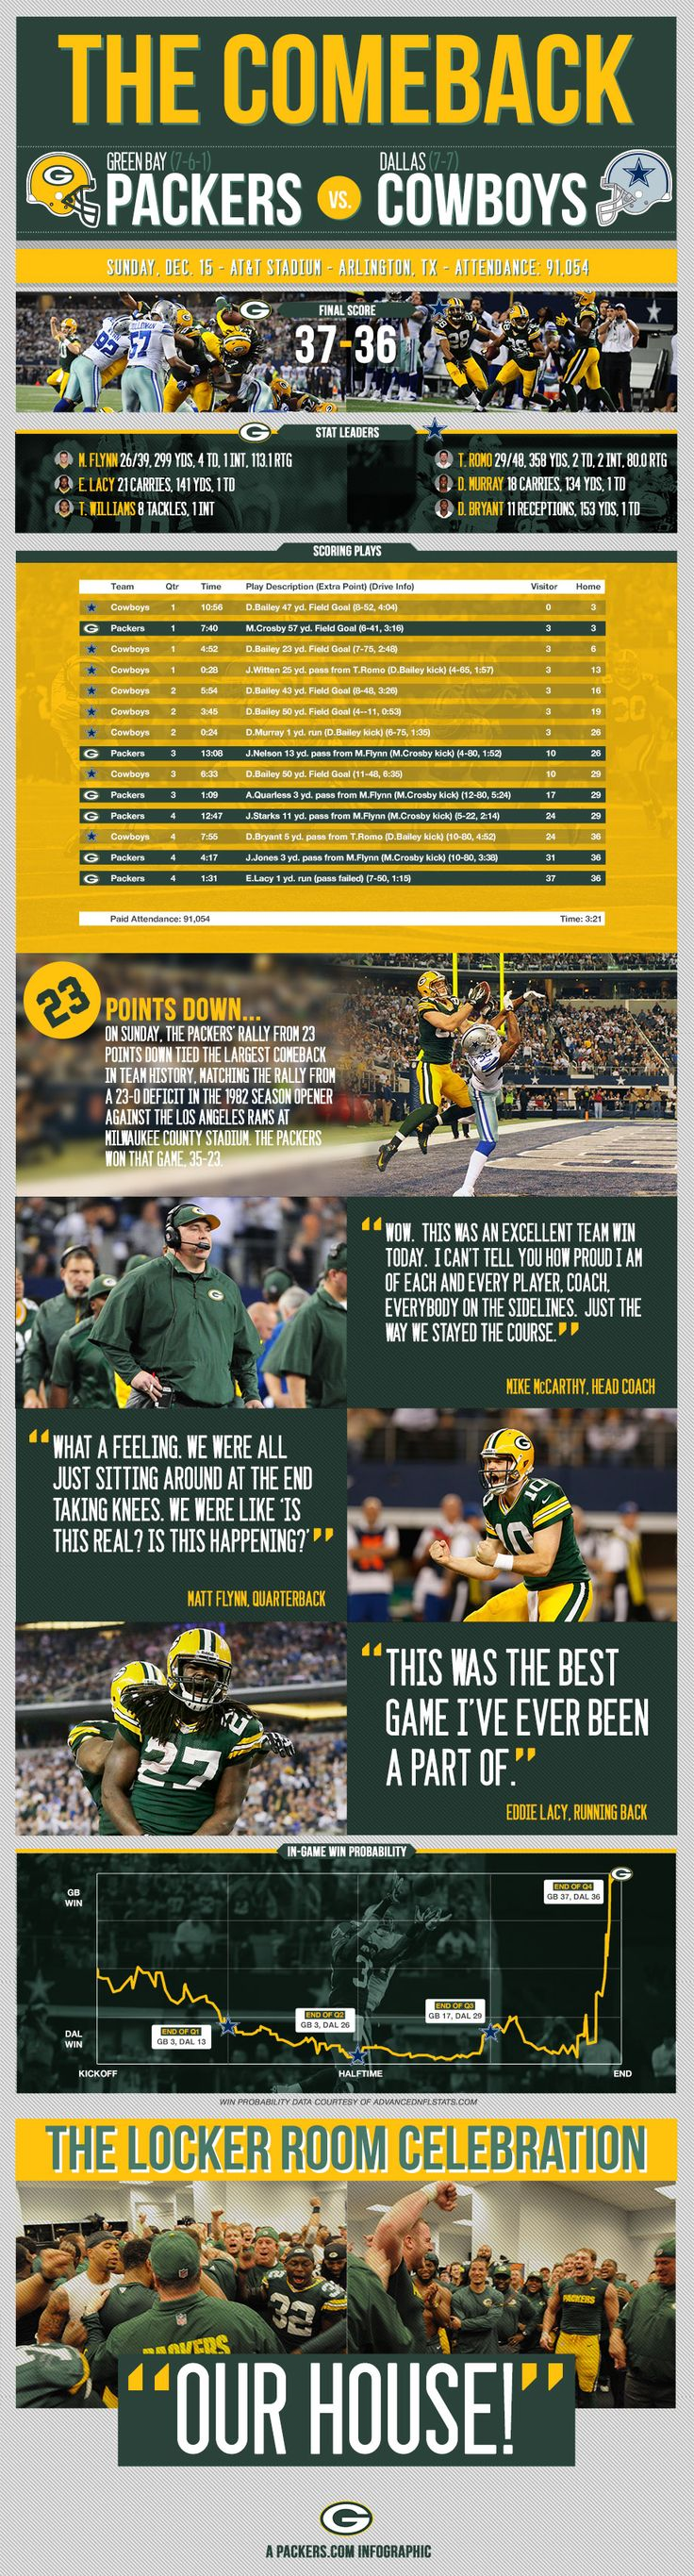 Green Bay Packers vs. Dallas Cowboys - The Comeback - Infographic.  McCarthy wasn't the only one proud of the Packers that day, so was I.